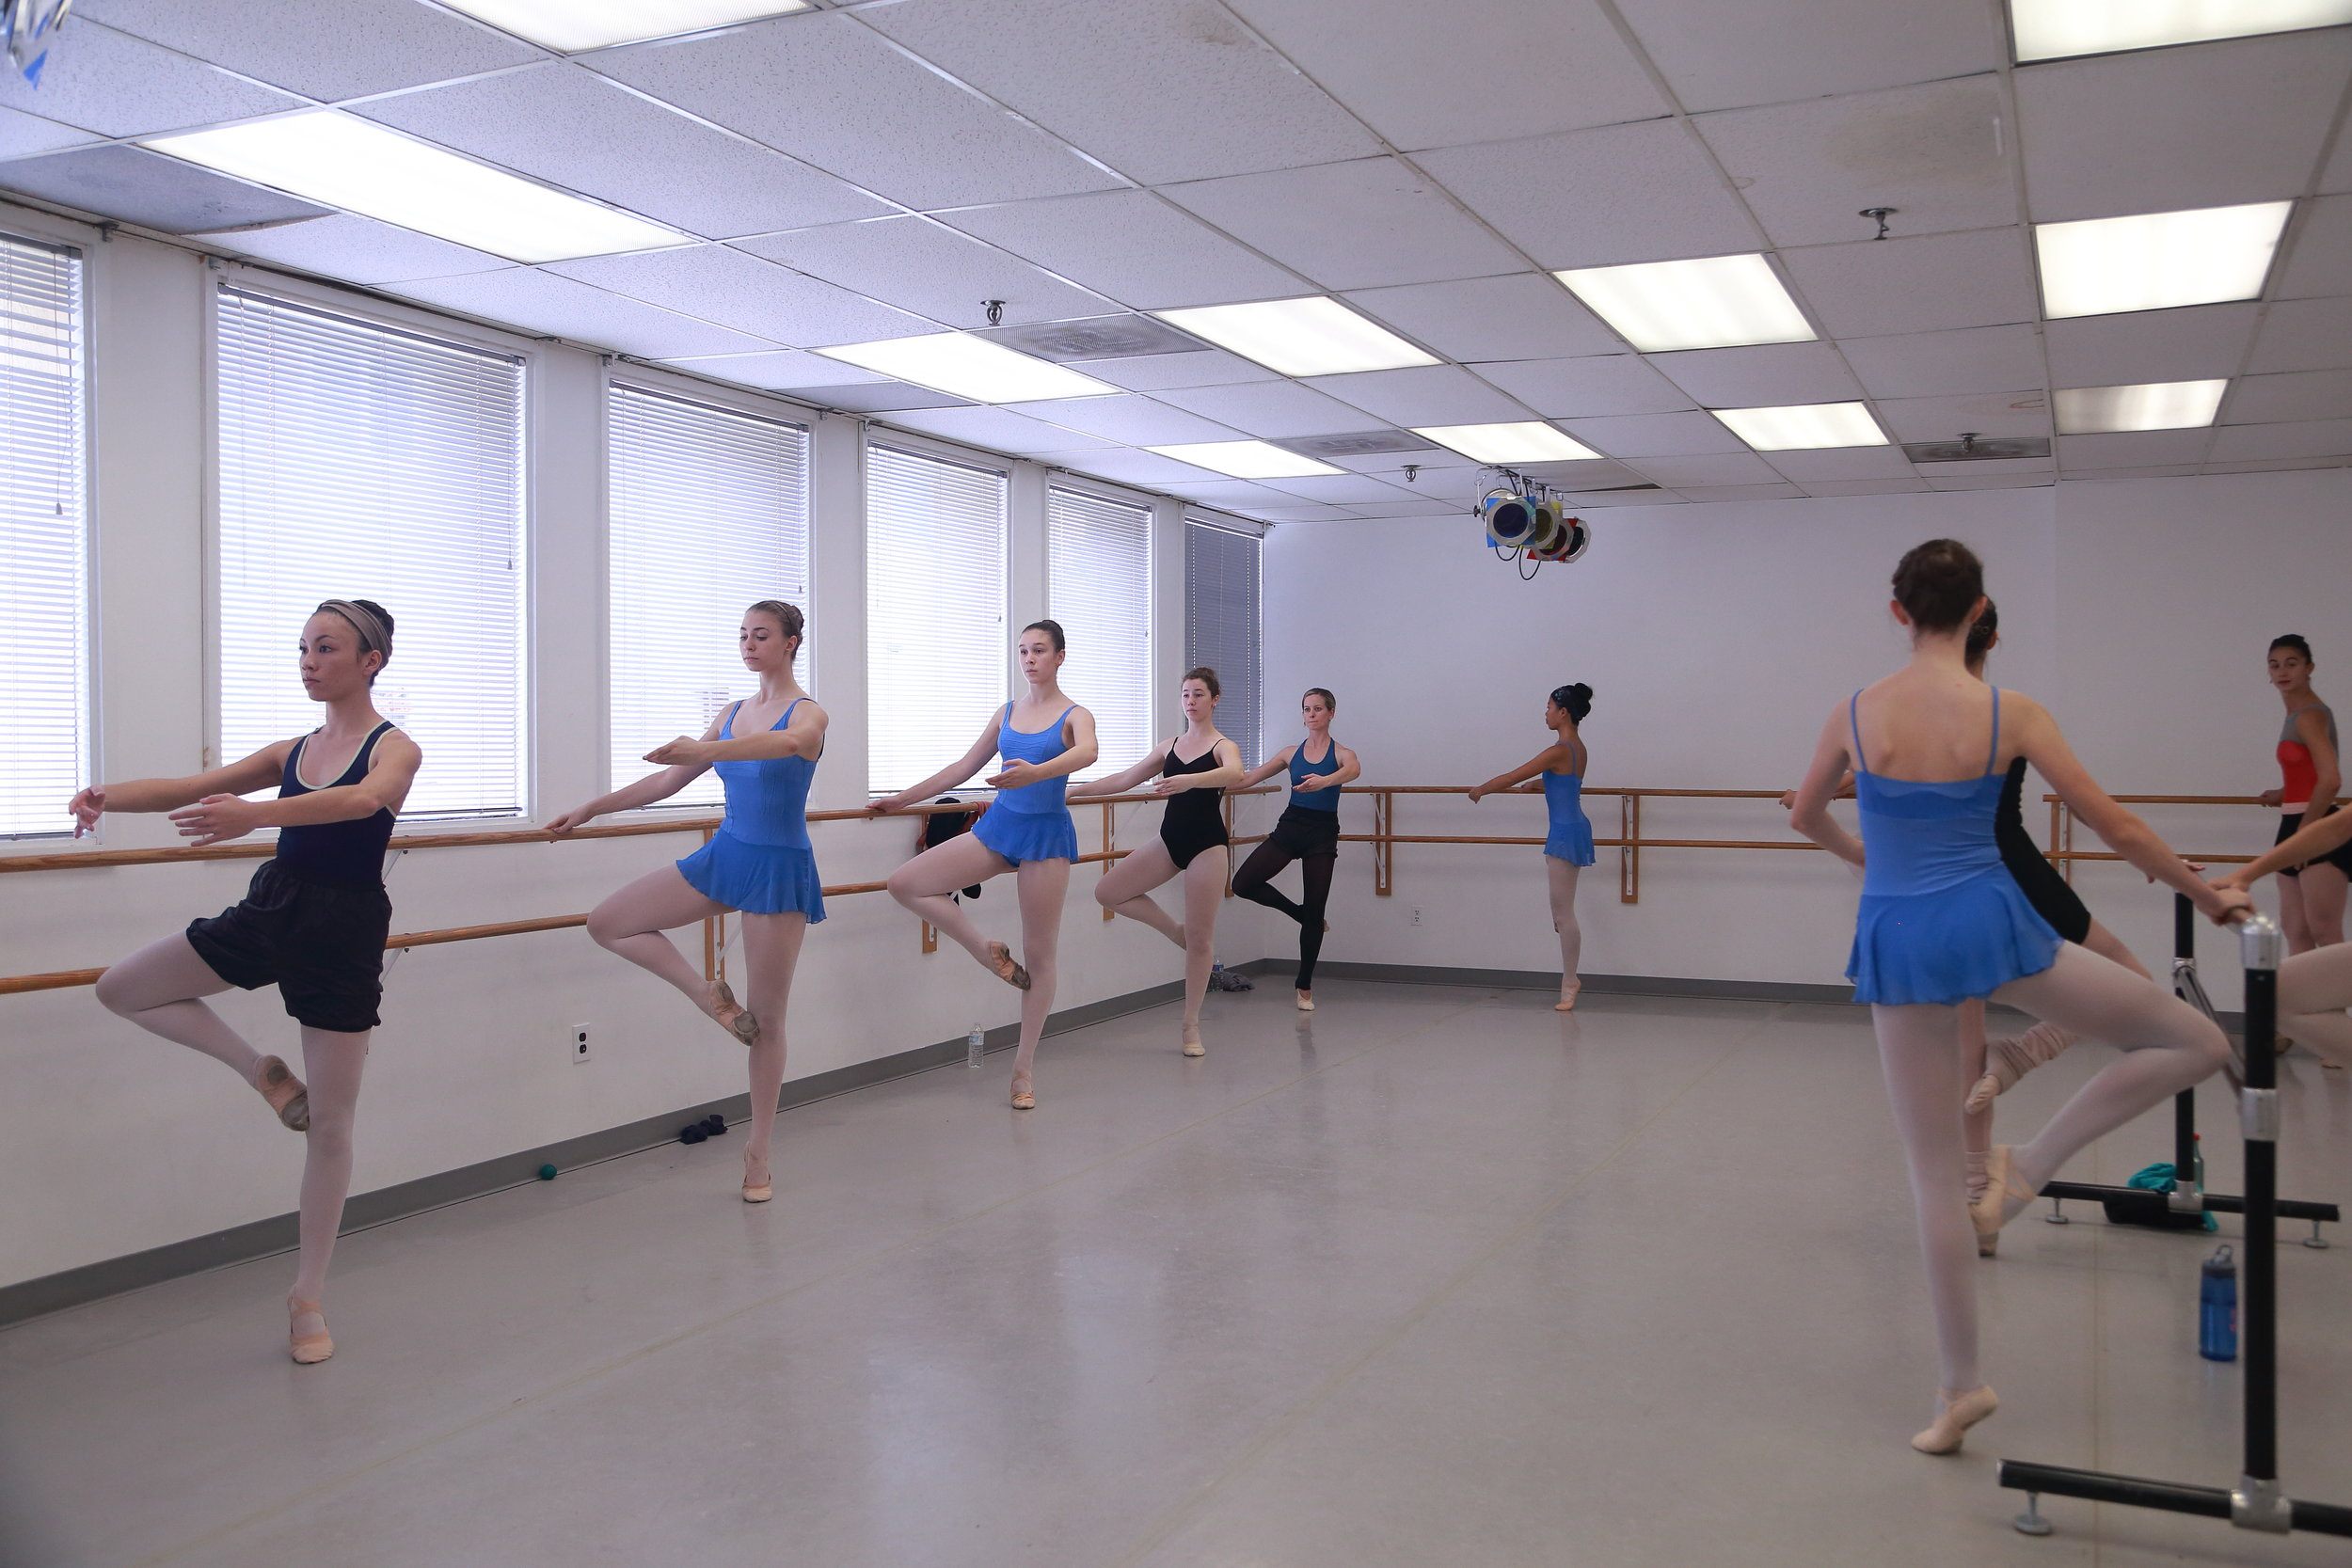 Professional Spring Floors - Our students at Misako Beats and Misako Ballet Studio are taught on state-of-the-art dance studios complete with authentic spring action floors. This ensures that our students have only the best in safety and comfort at a professional level.